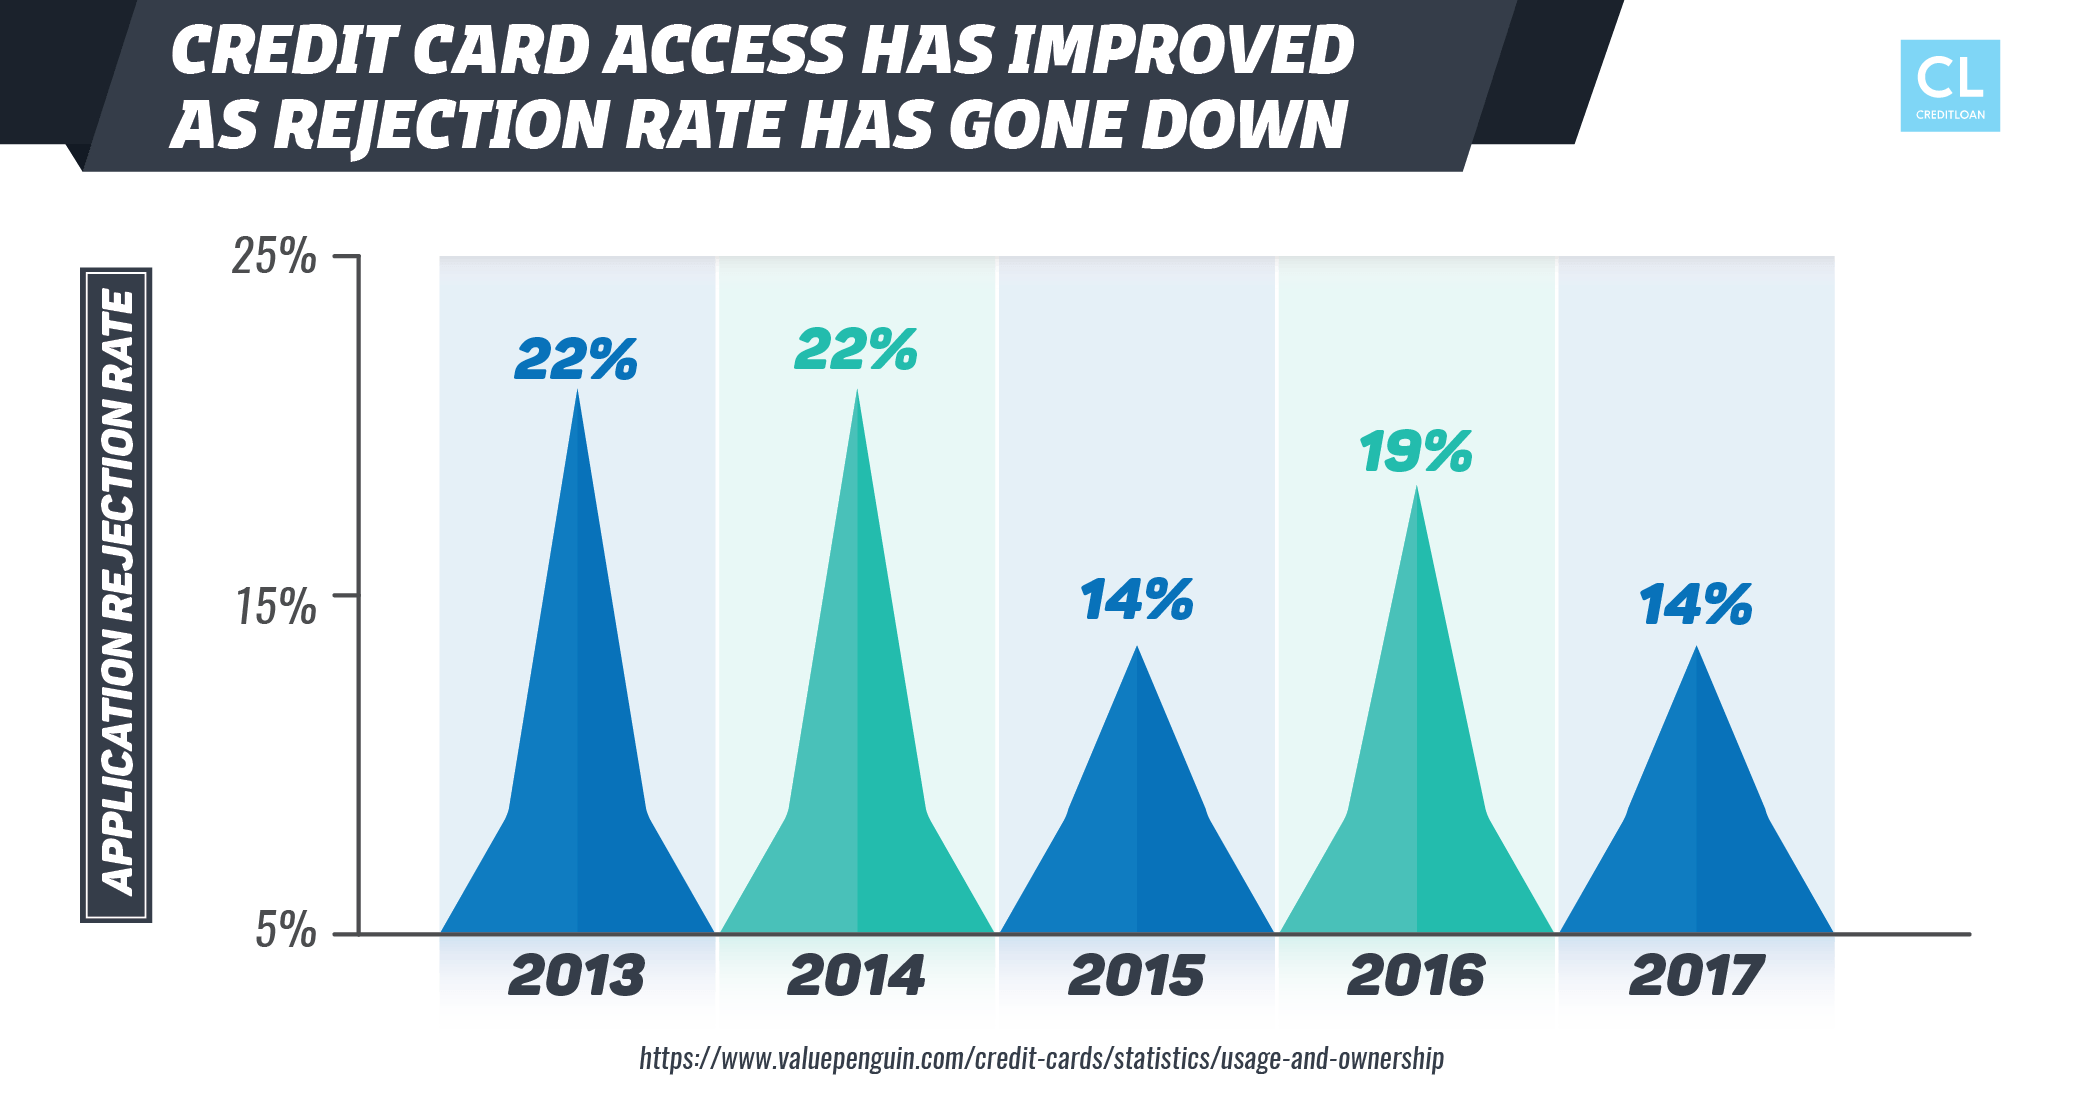 Credit Card Access has Improved as Rejection Rate has Gone Down (2013-2017)